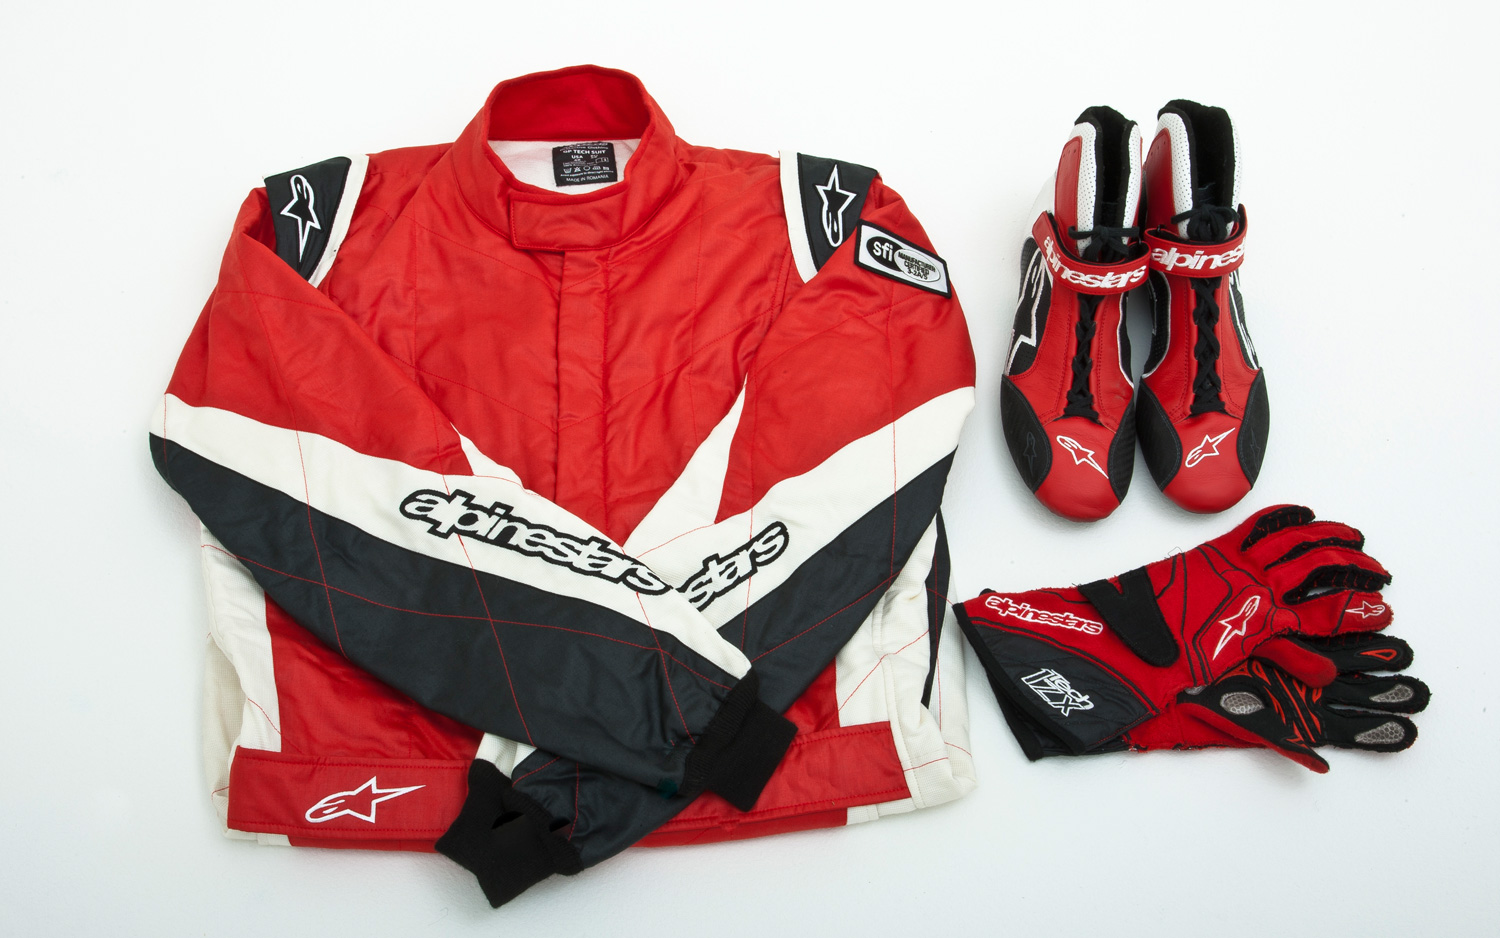 20968bd89baa Gear  Alpinestars GP Tech Race Suit